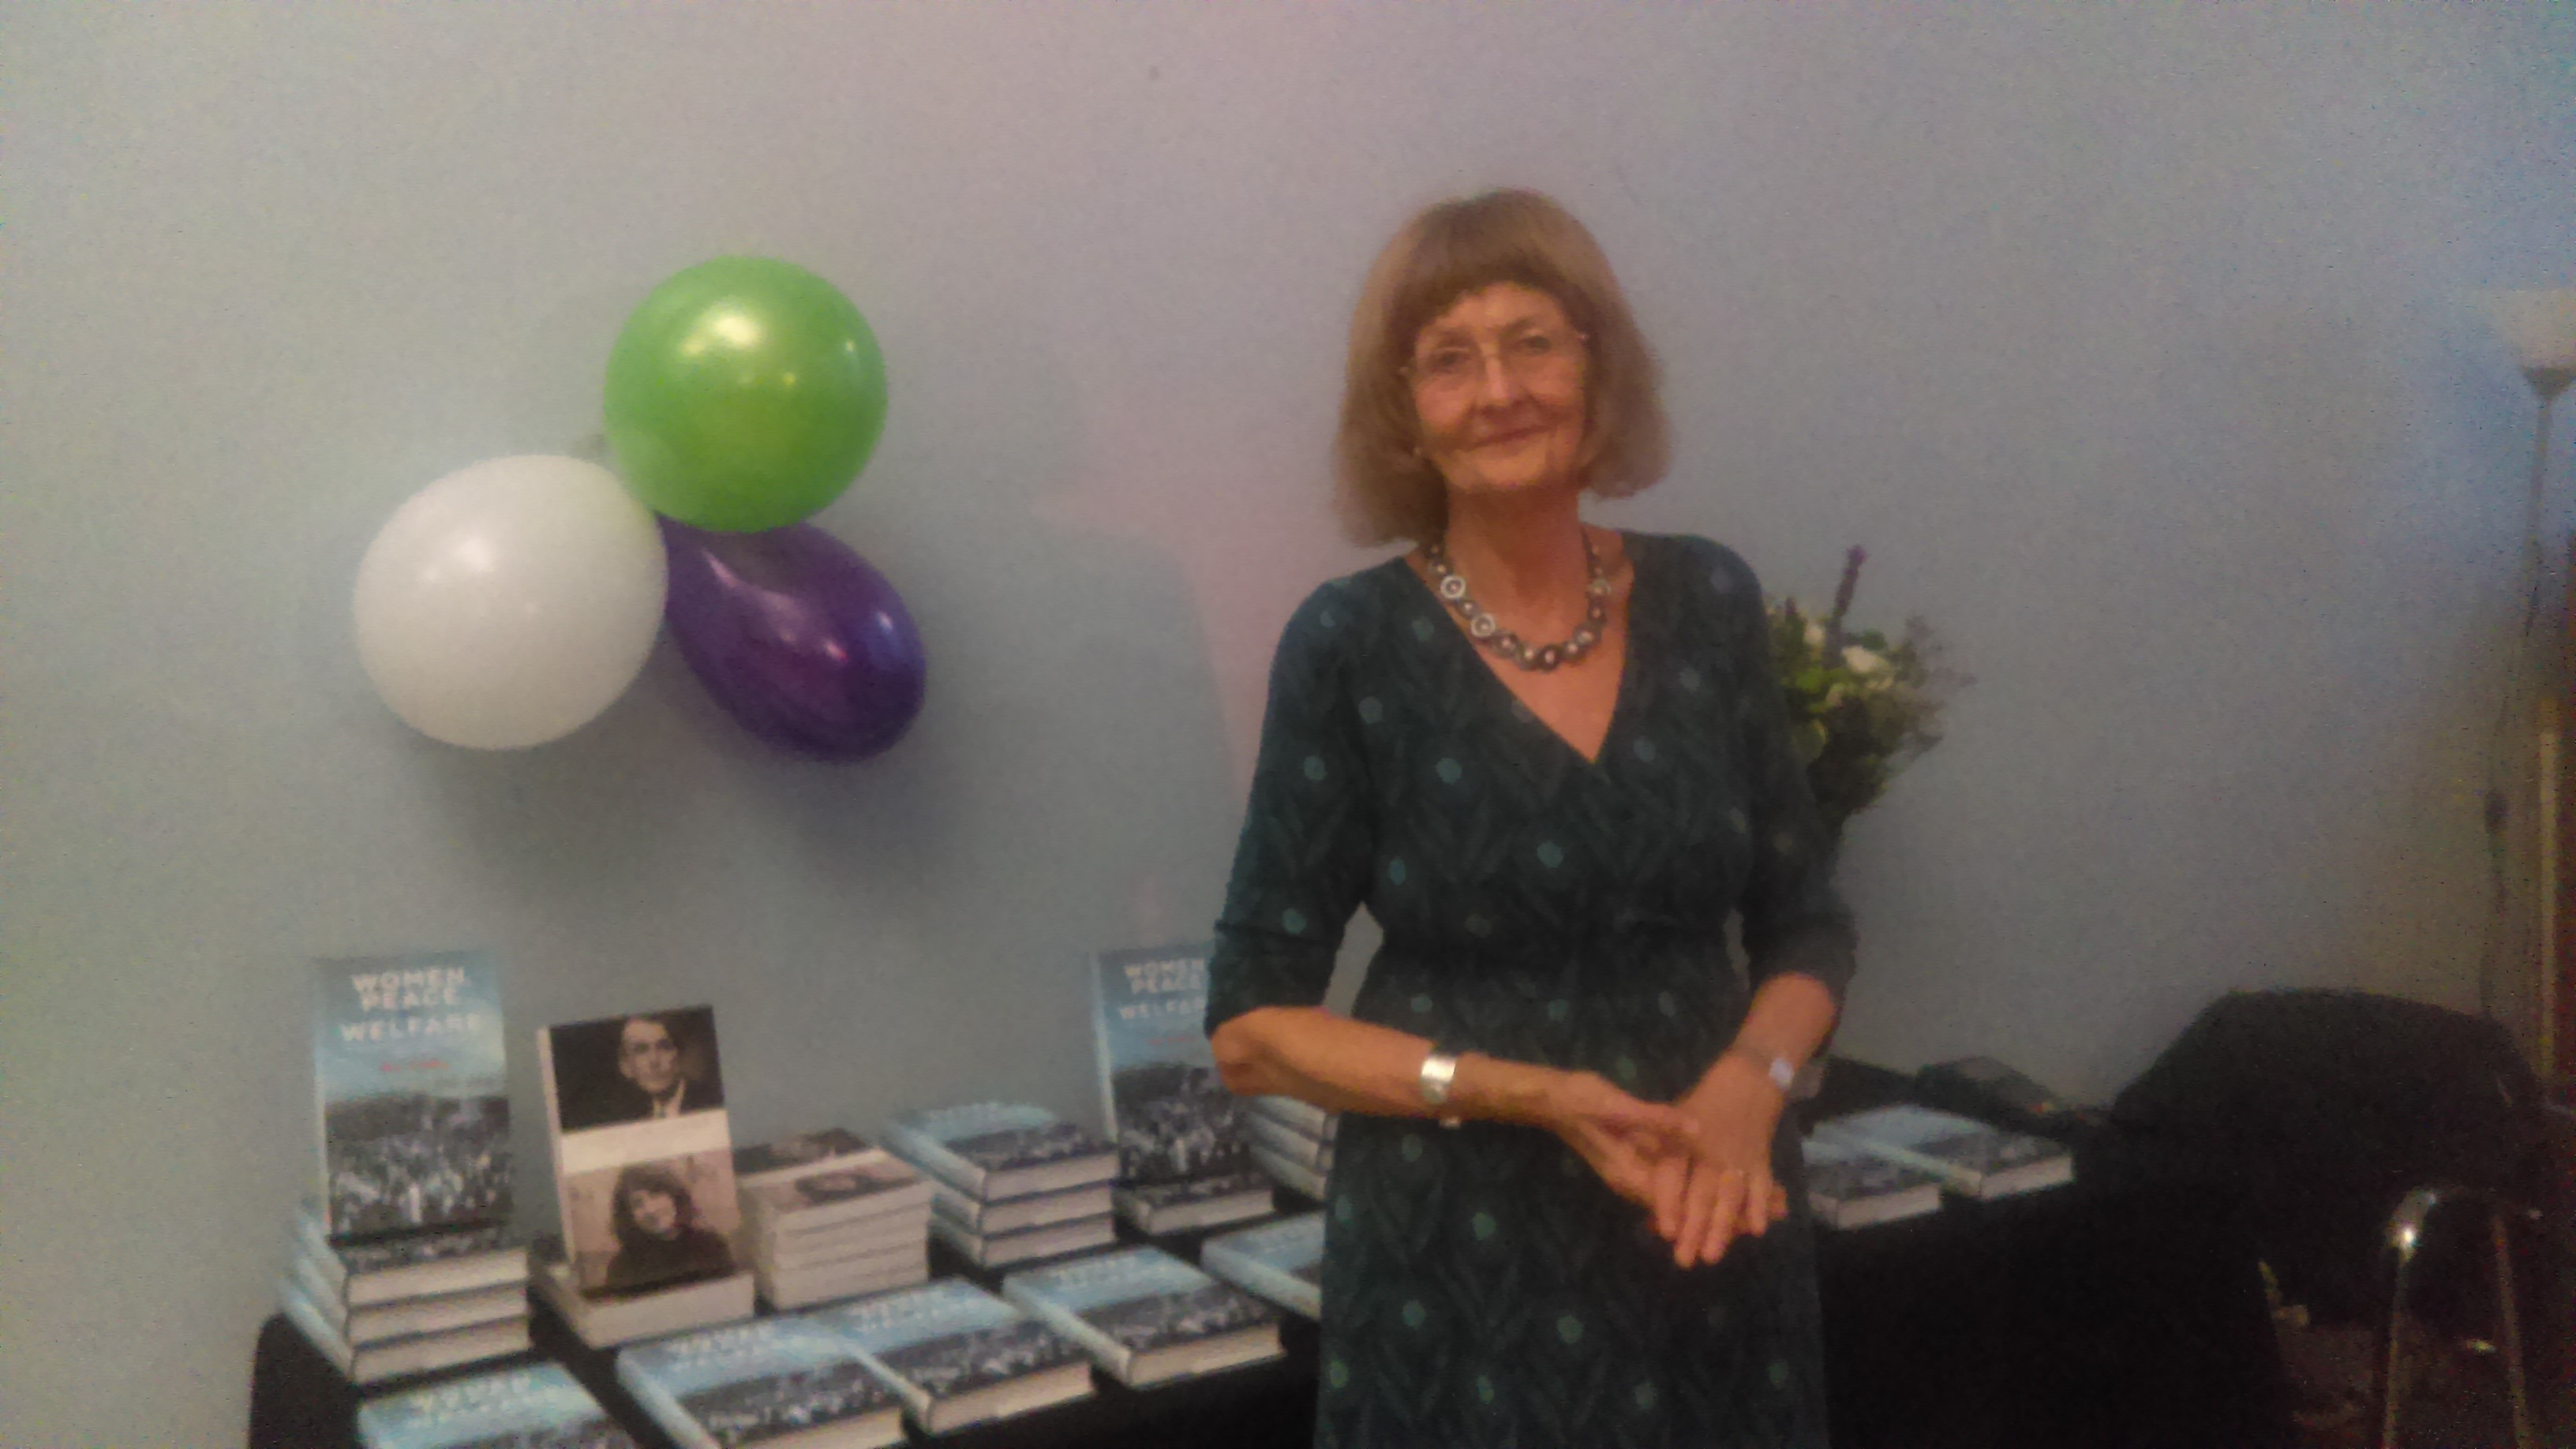 Ann Oakley book launch